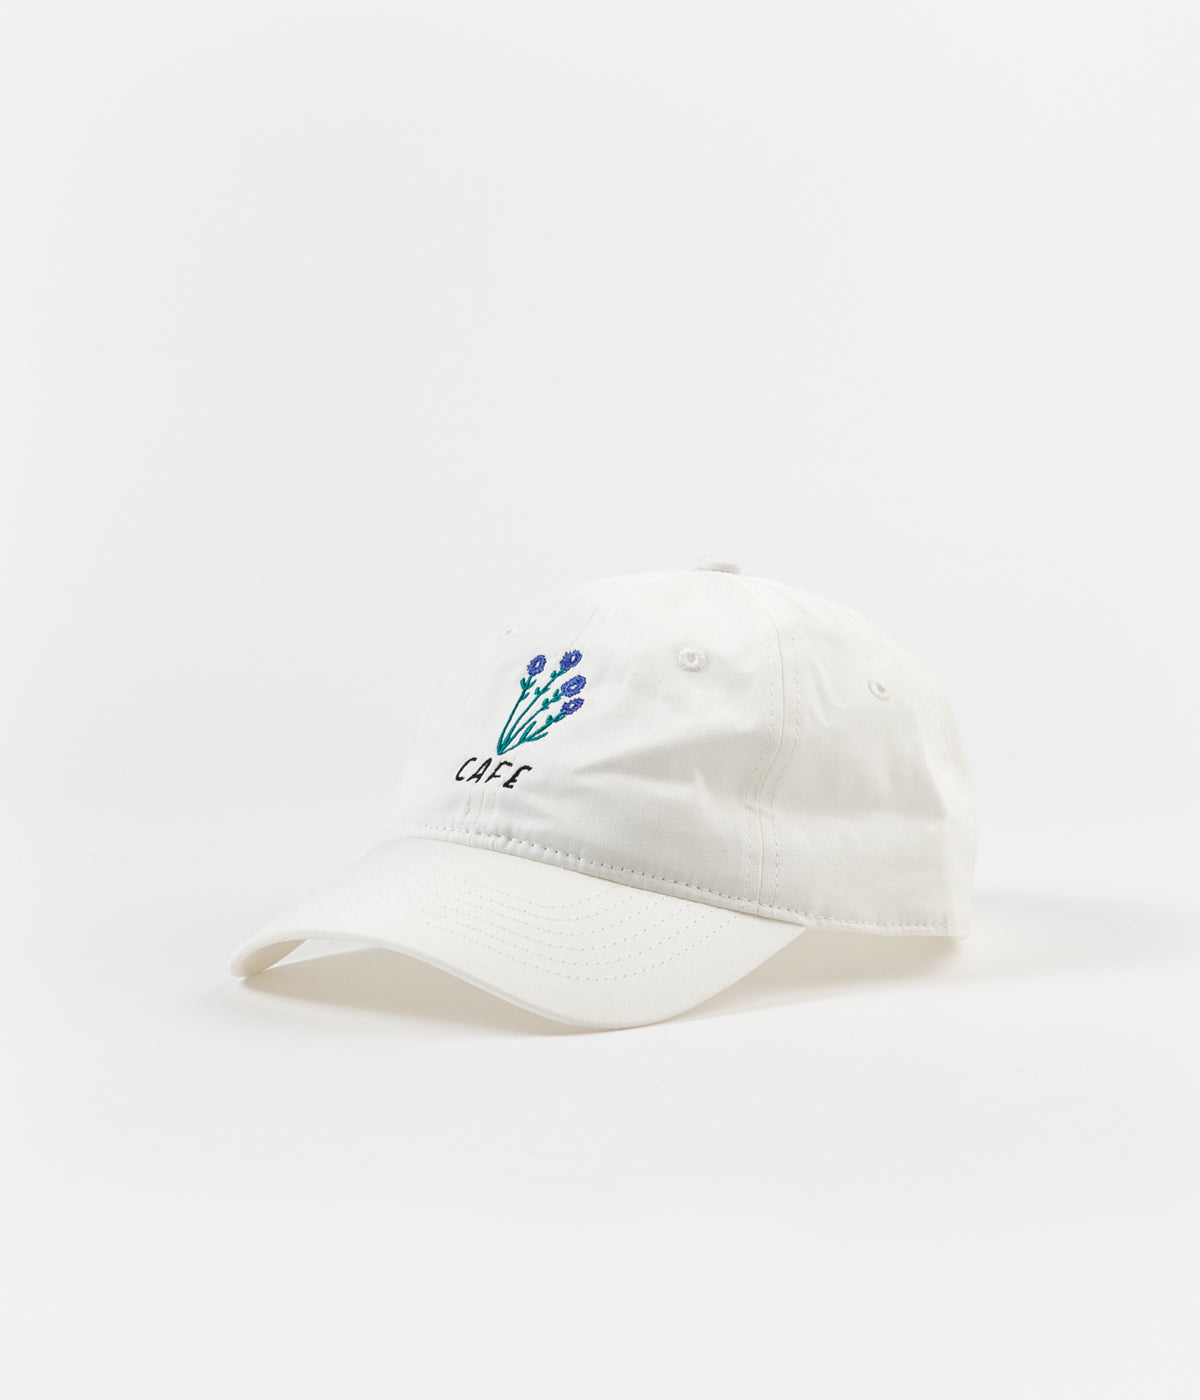 Skateboard Cafe Floral Cap - White